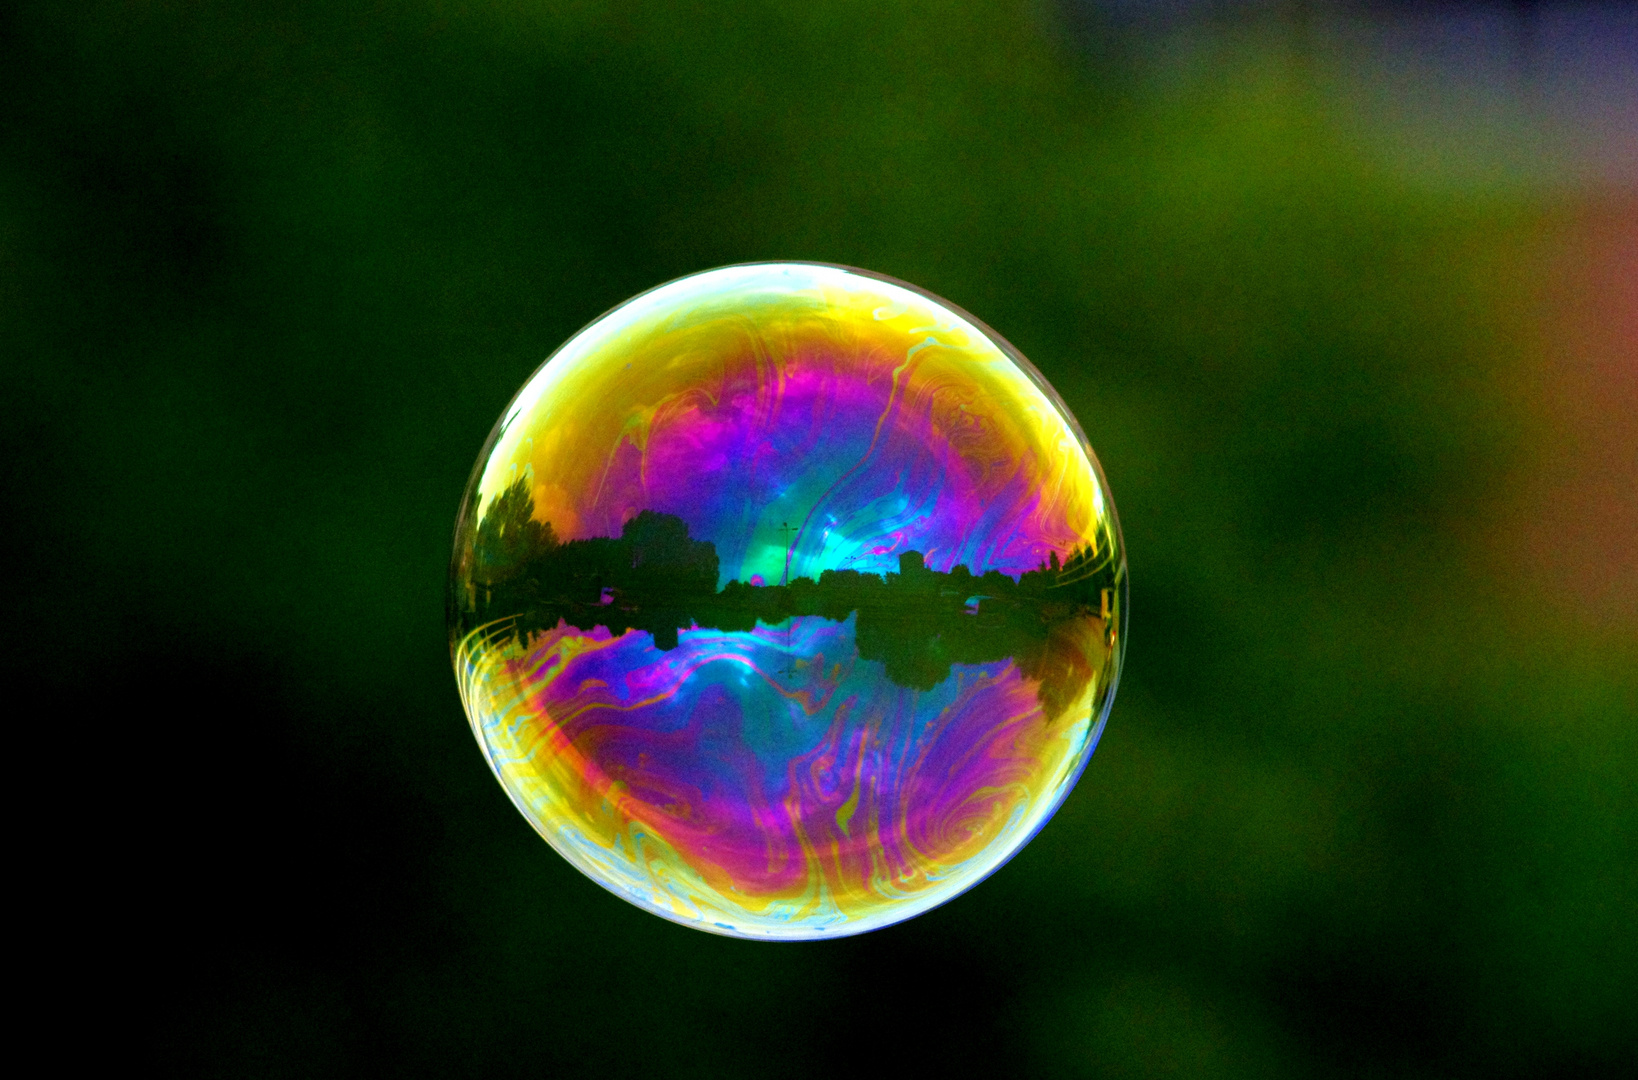 Reflections on a bubble!